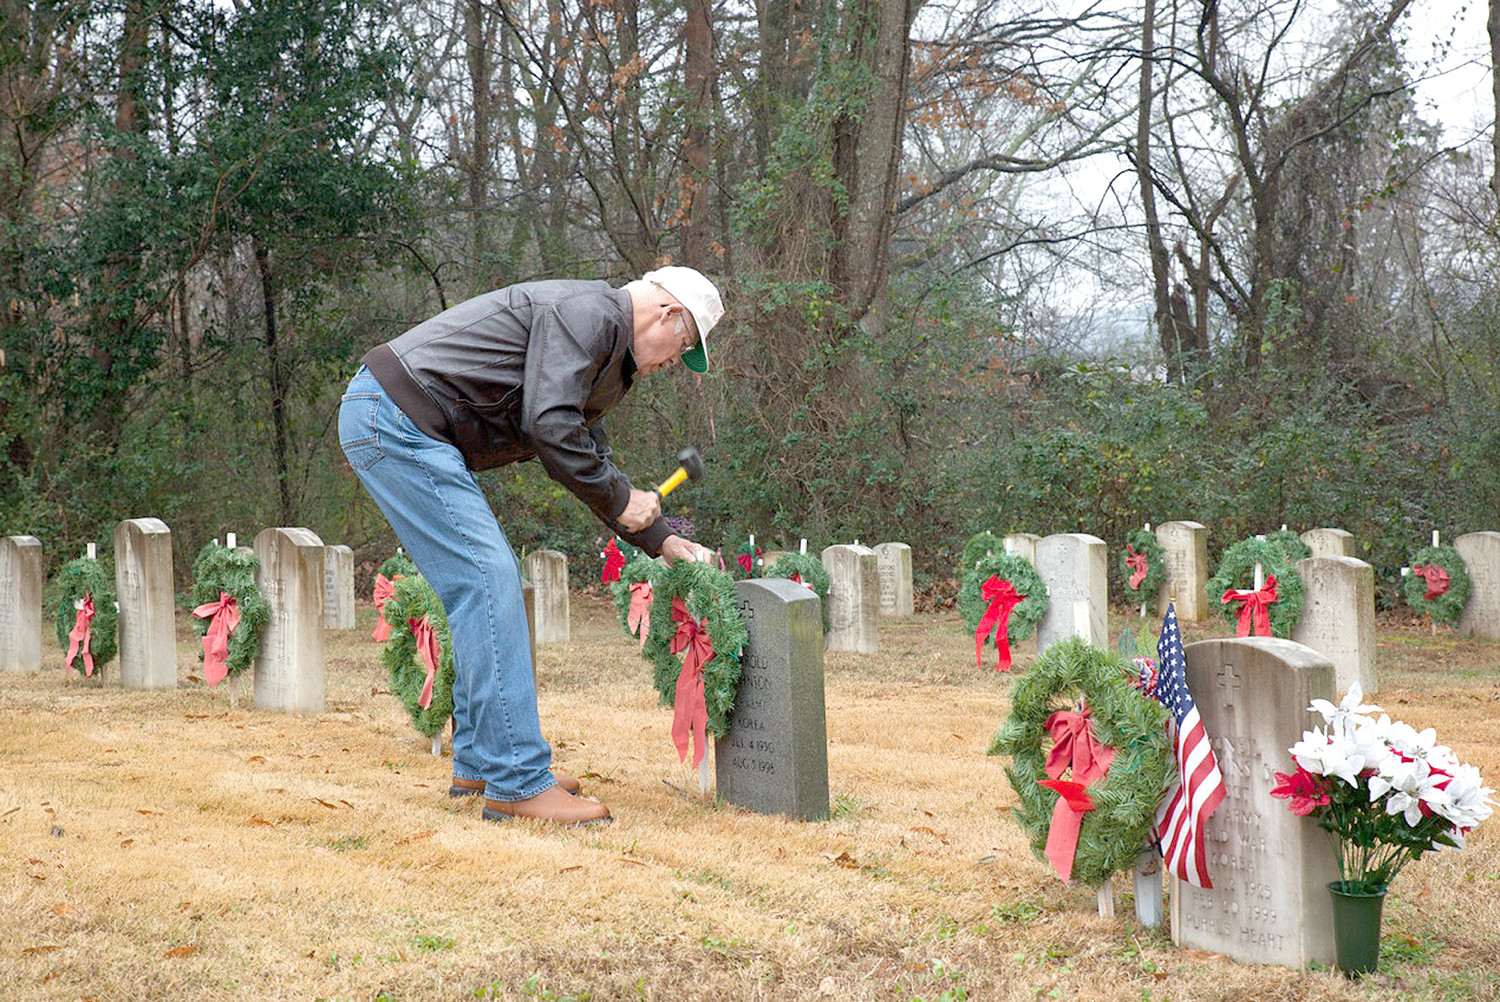 CLEVELAND'S JOHN THOMASON, who is active with several veterans organizations in Bradley County, was busy preparing a Christmas wreath and a small U.S. flag on the grave of a local veteran in Fort Hill Cemetery. More than 200 wreaths were placed in the cemetery recently.